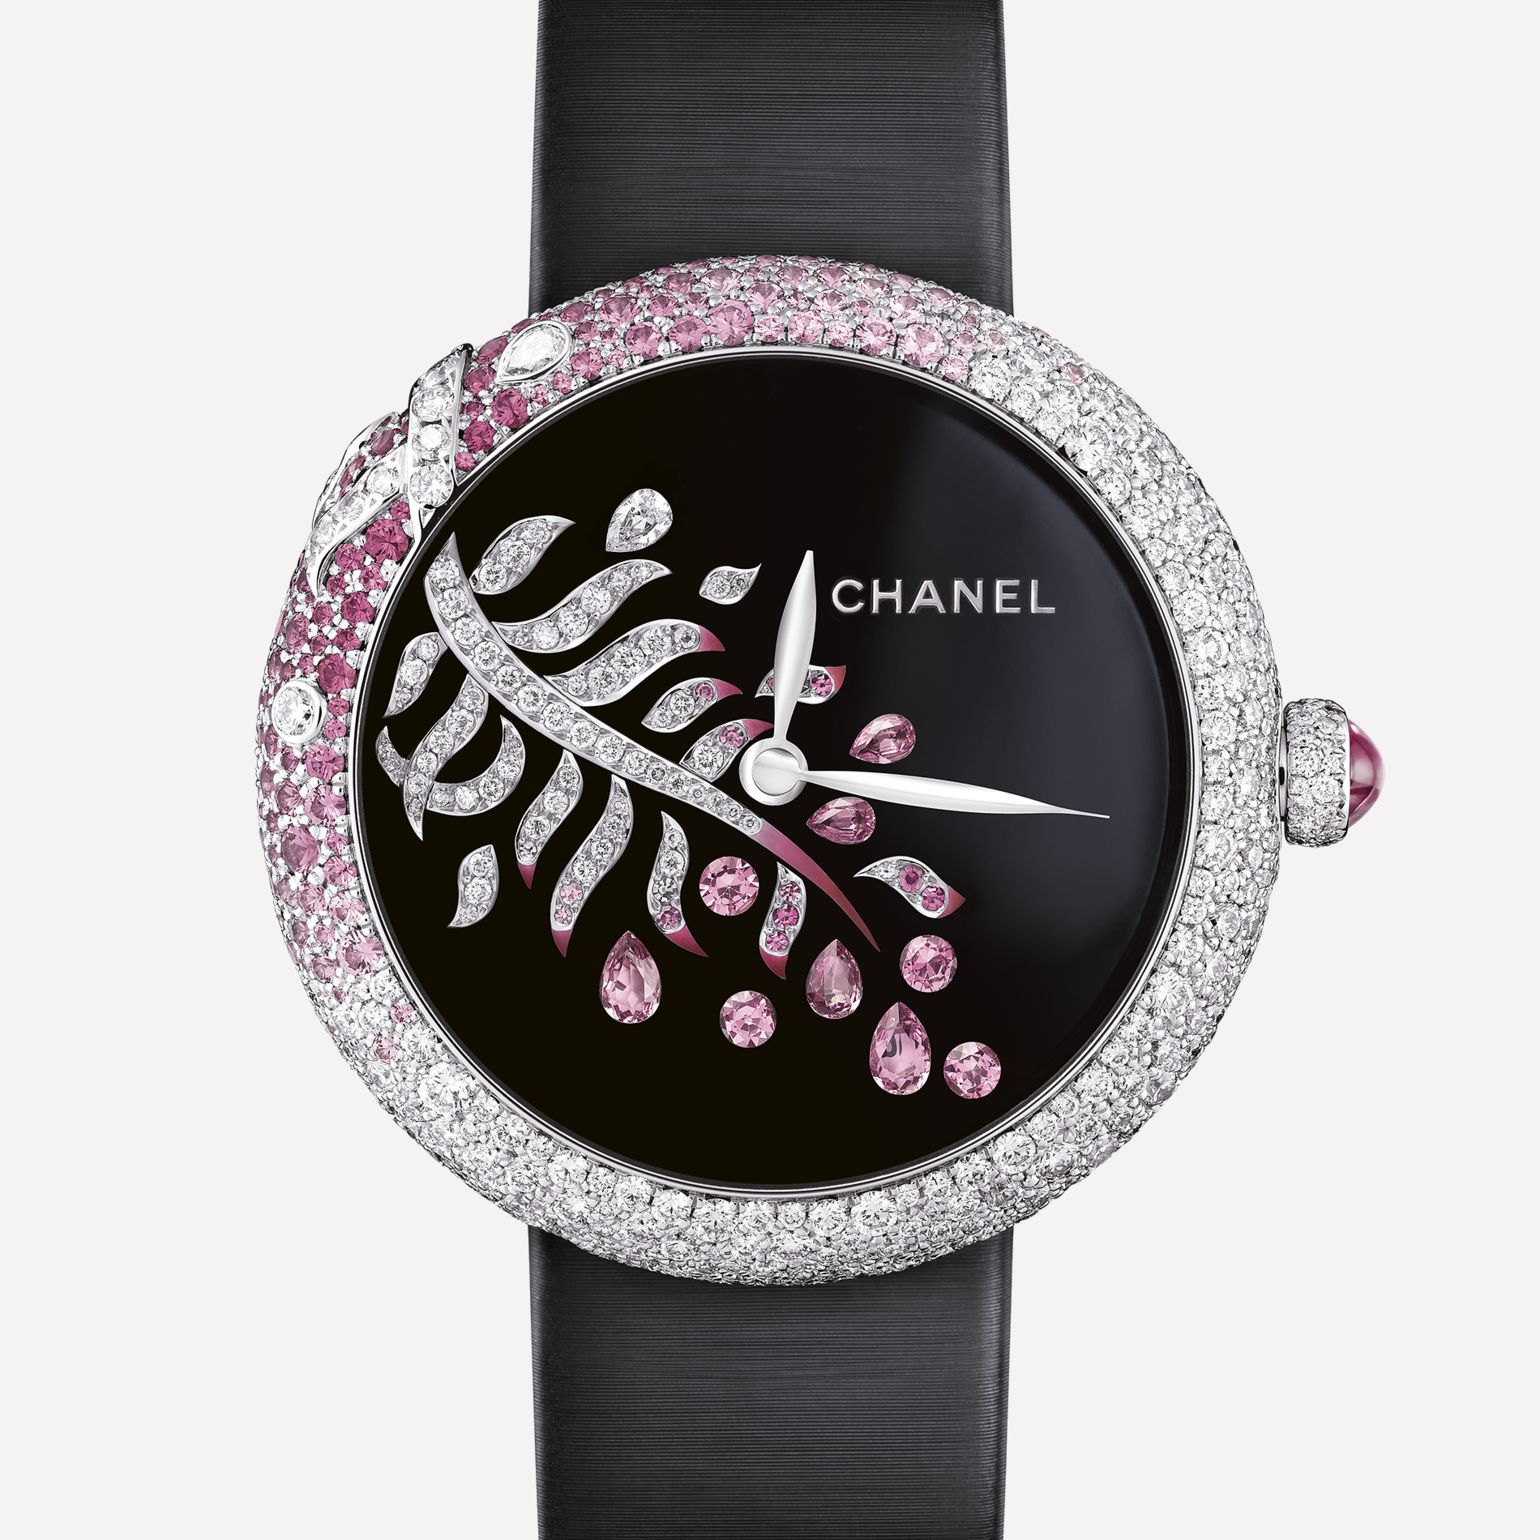 Mademoiselle Privé Watch La Plume Enchantée jewelry - Grand Feu black enamel, diamonds and pink sapphires